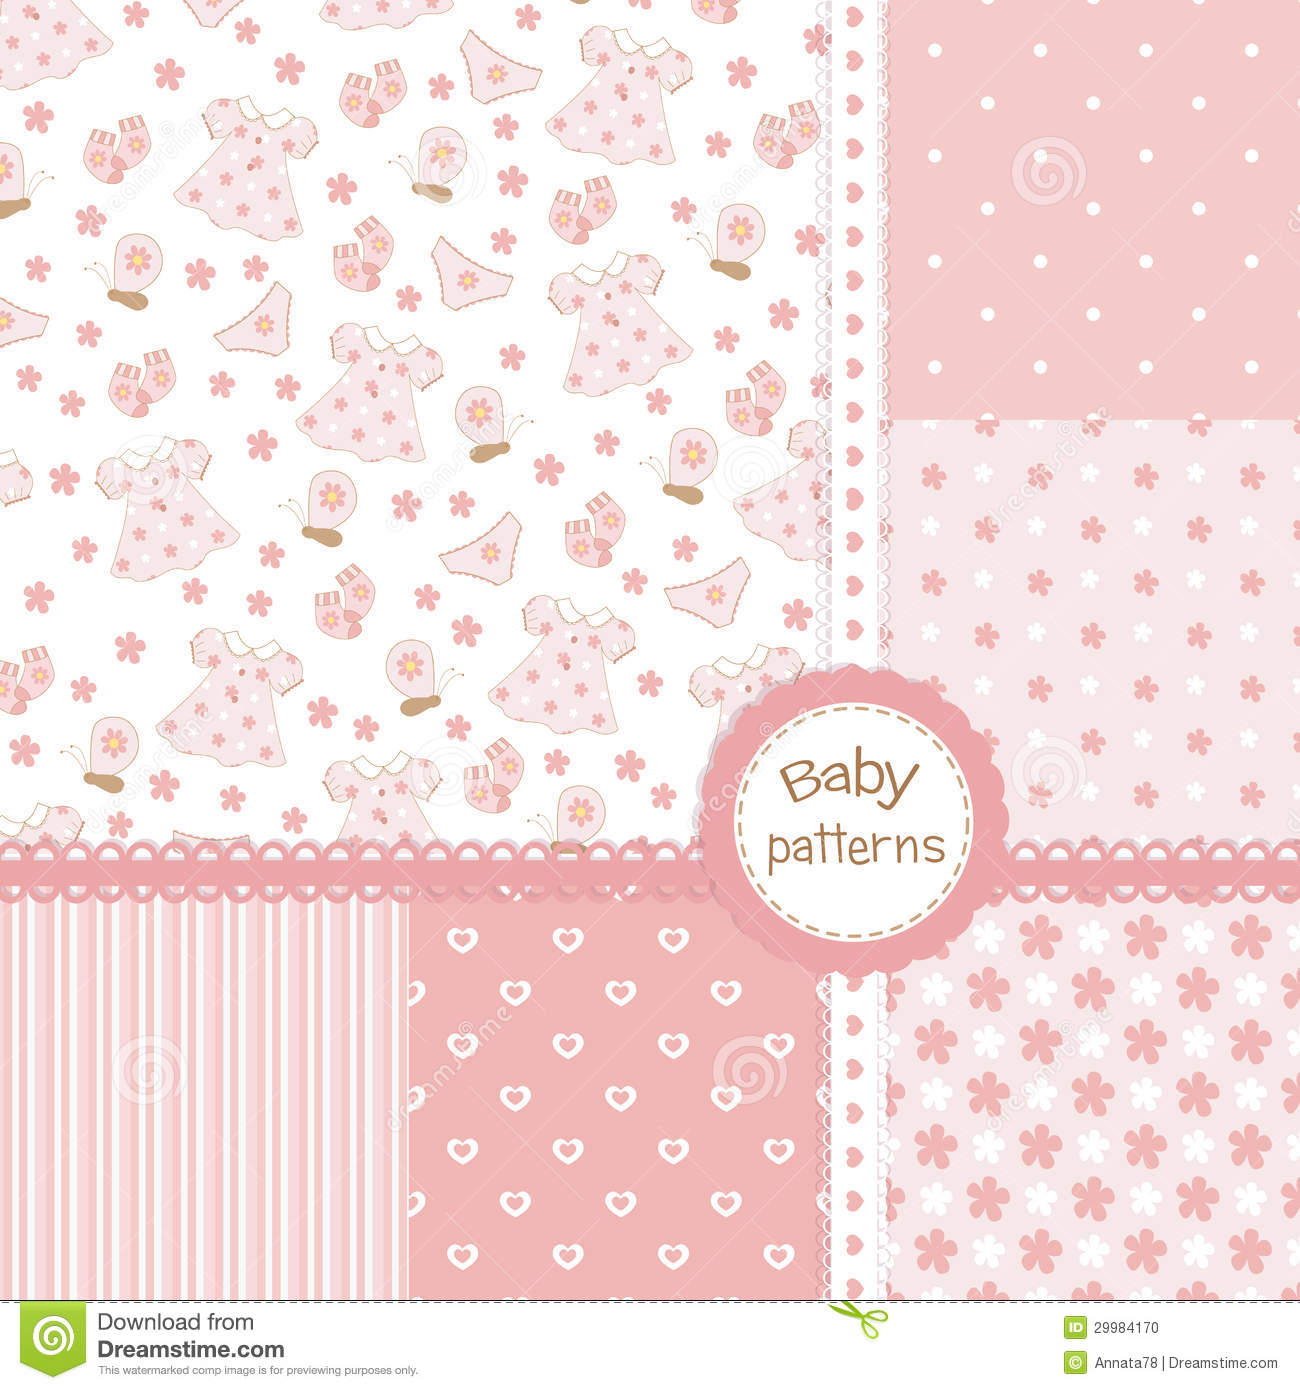 Baby Girl Seamless Patterns Stock Photo - Image: 29984170